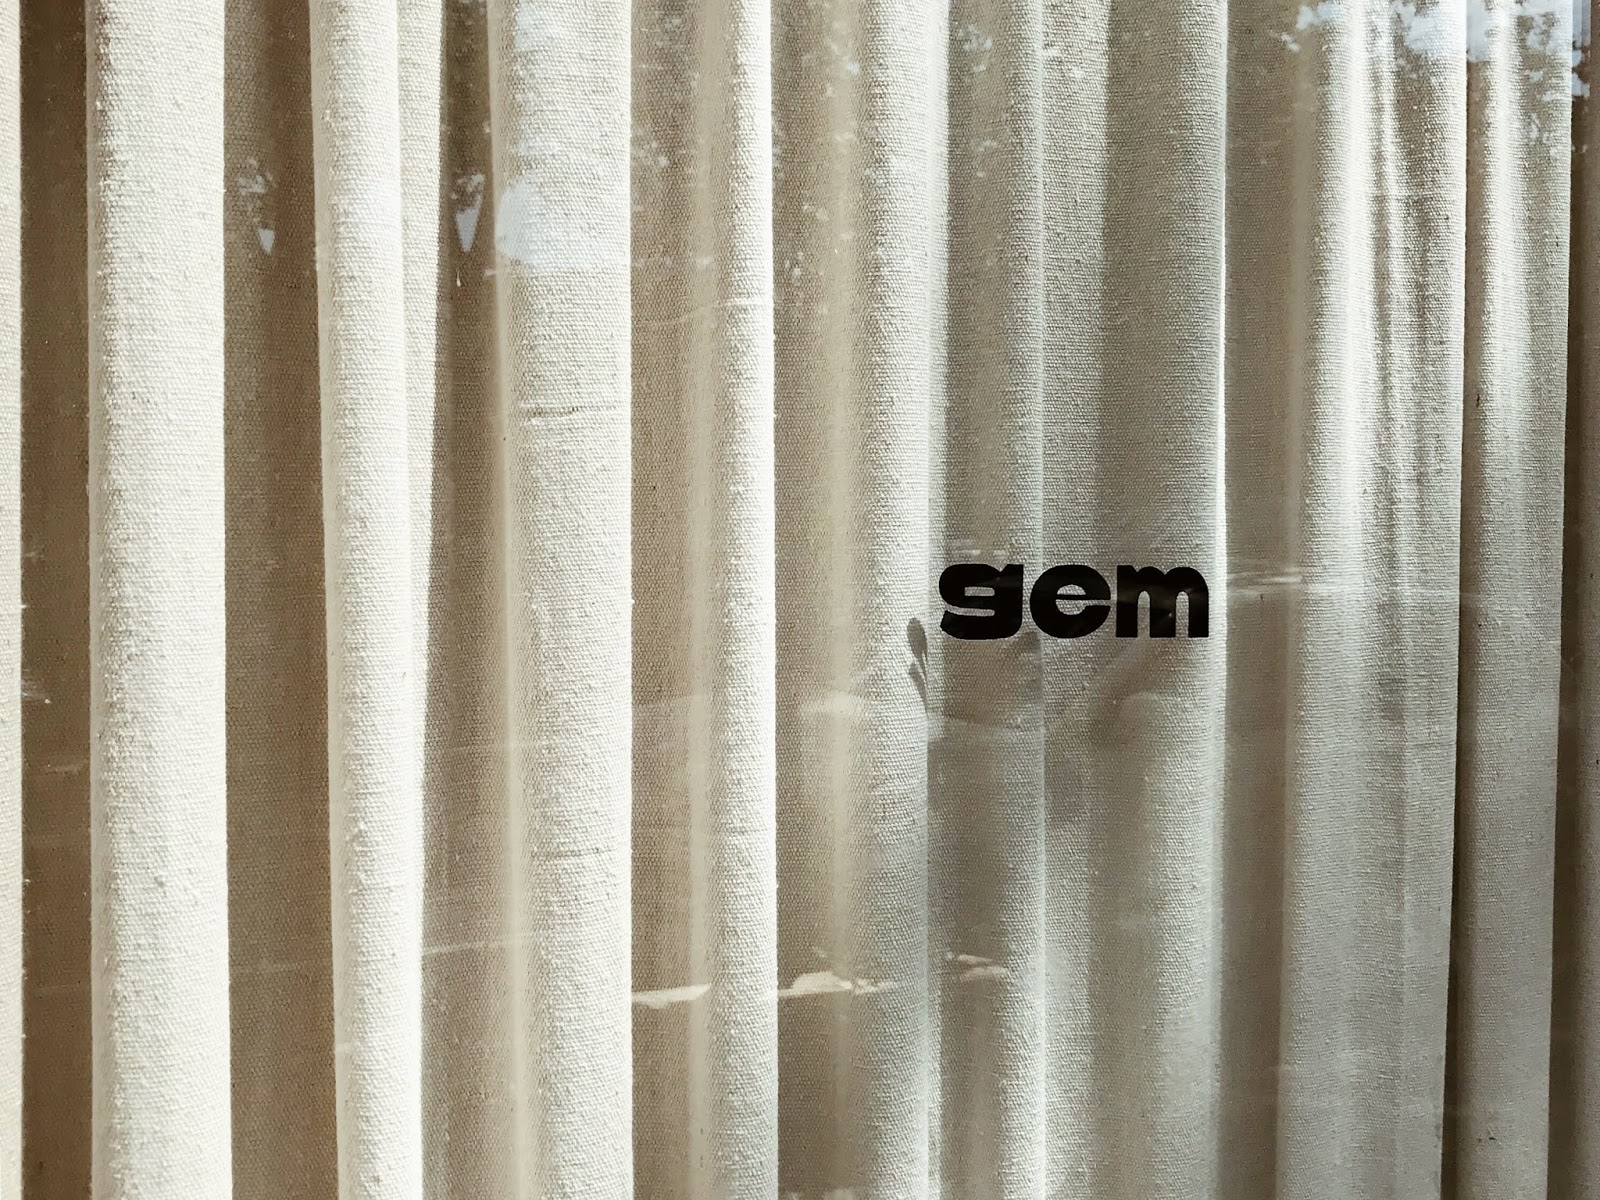 Gem | New York | Flynn McGarry